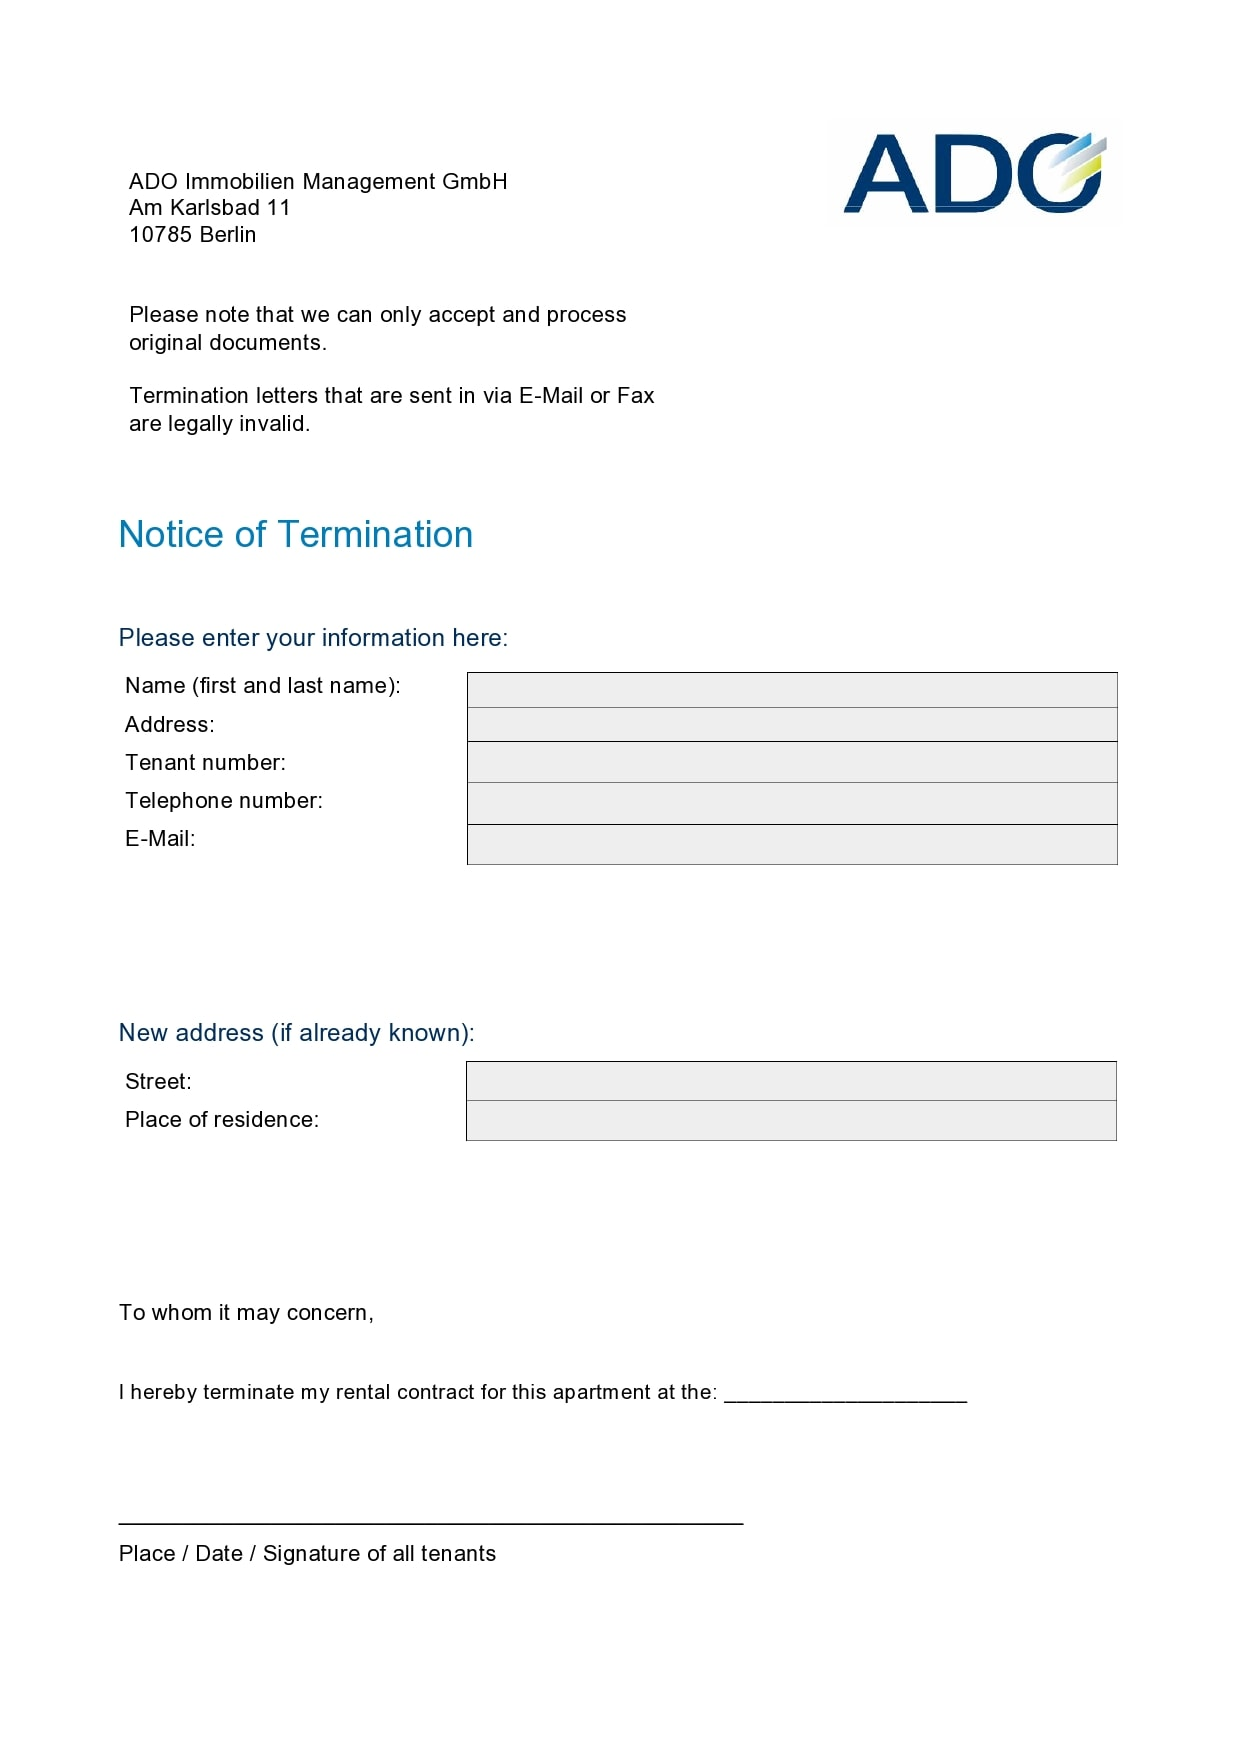 notice of termination 16